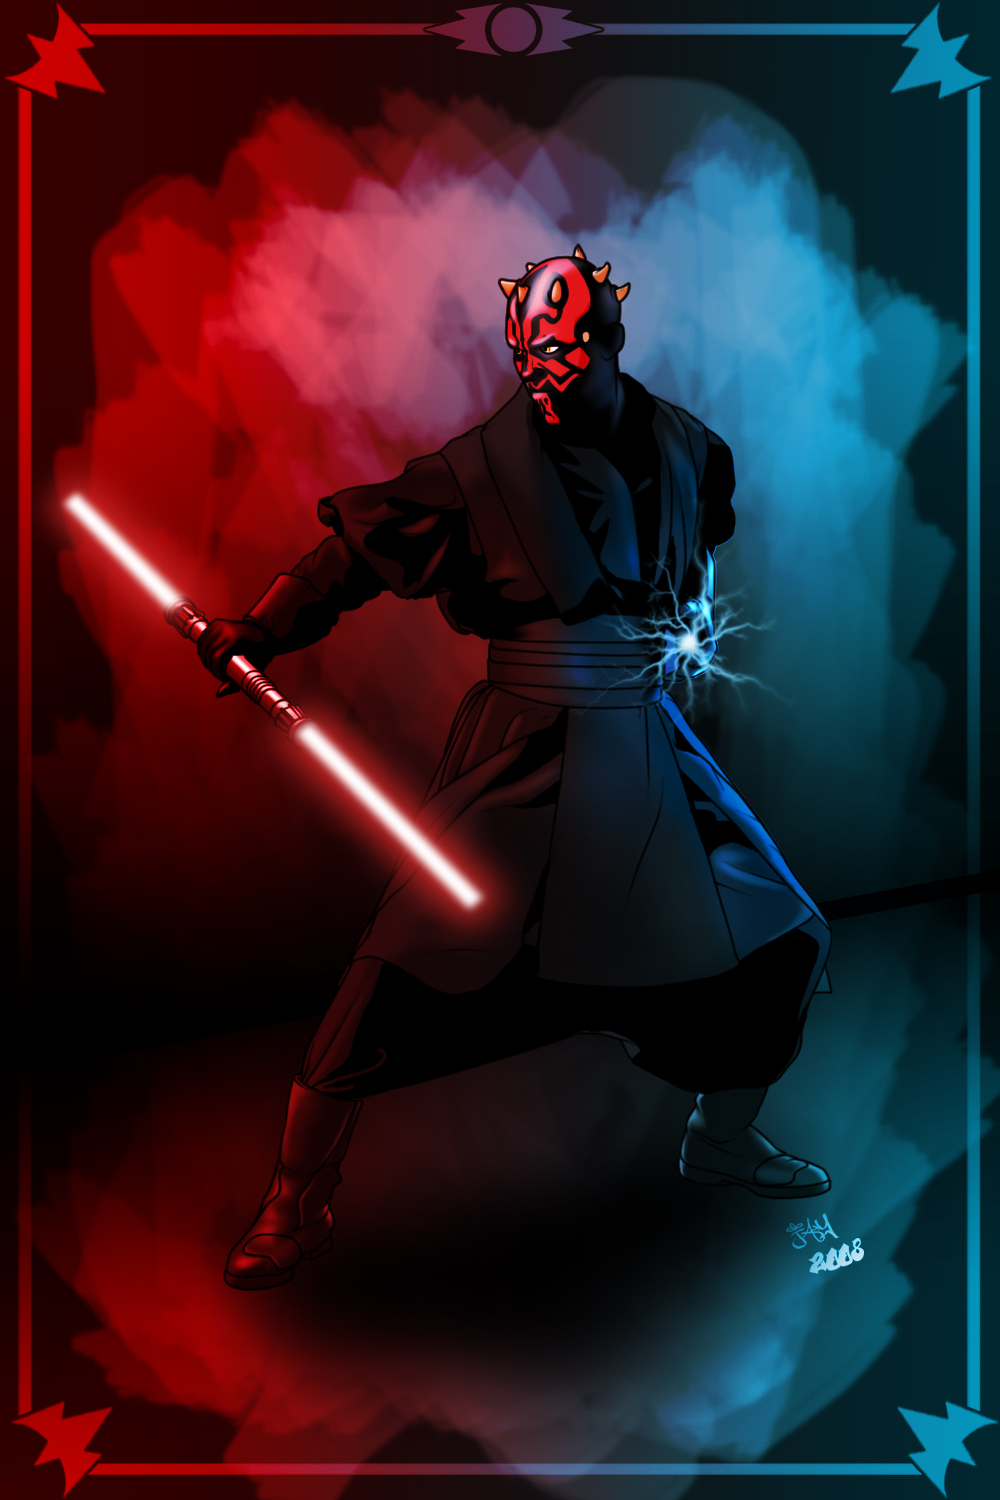 Lipstick face demon darth maul